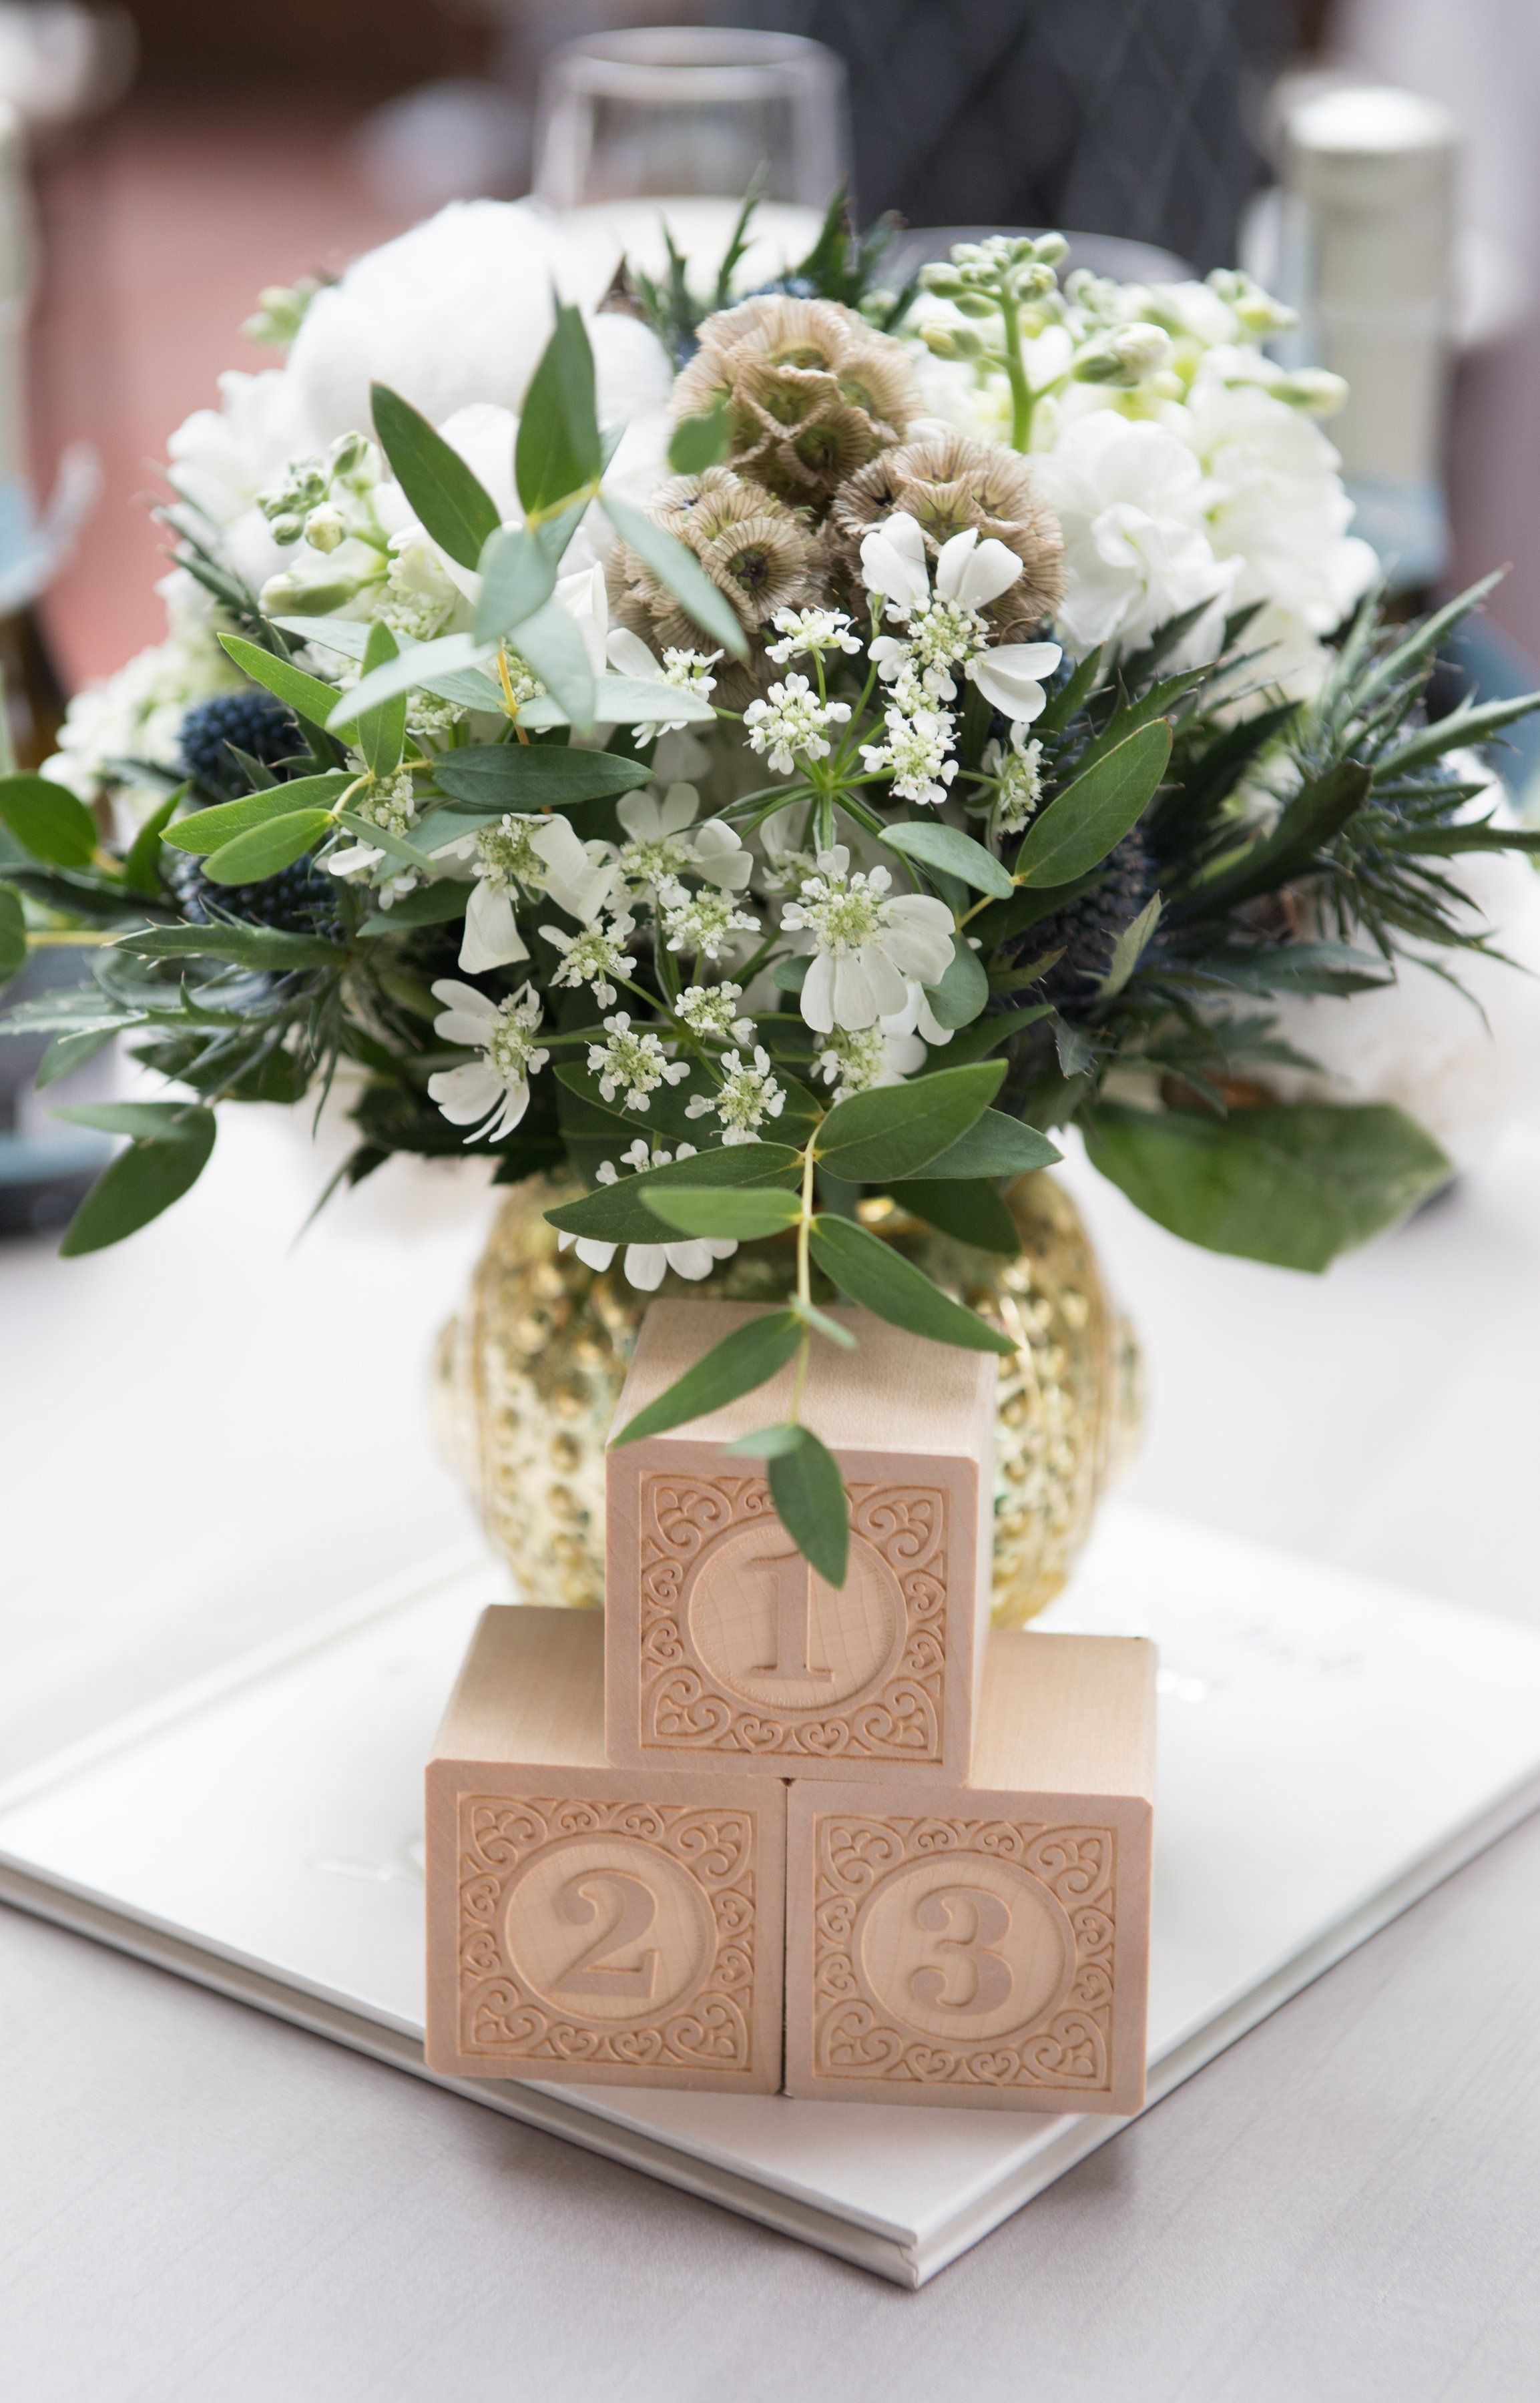 Baby Shower Centerpiece Inspiration Baby Books Wooden Building Blocks And Floral Arran Elegant Baby Shower Baby Shower Centerpieces Baby Blocks Baby Shower